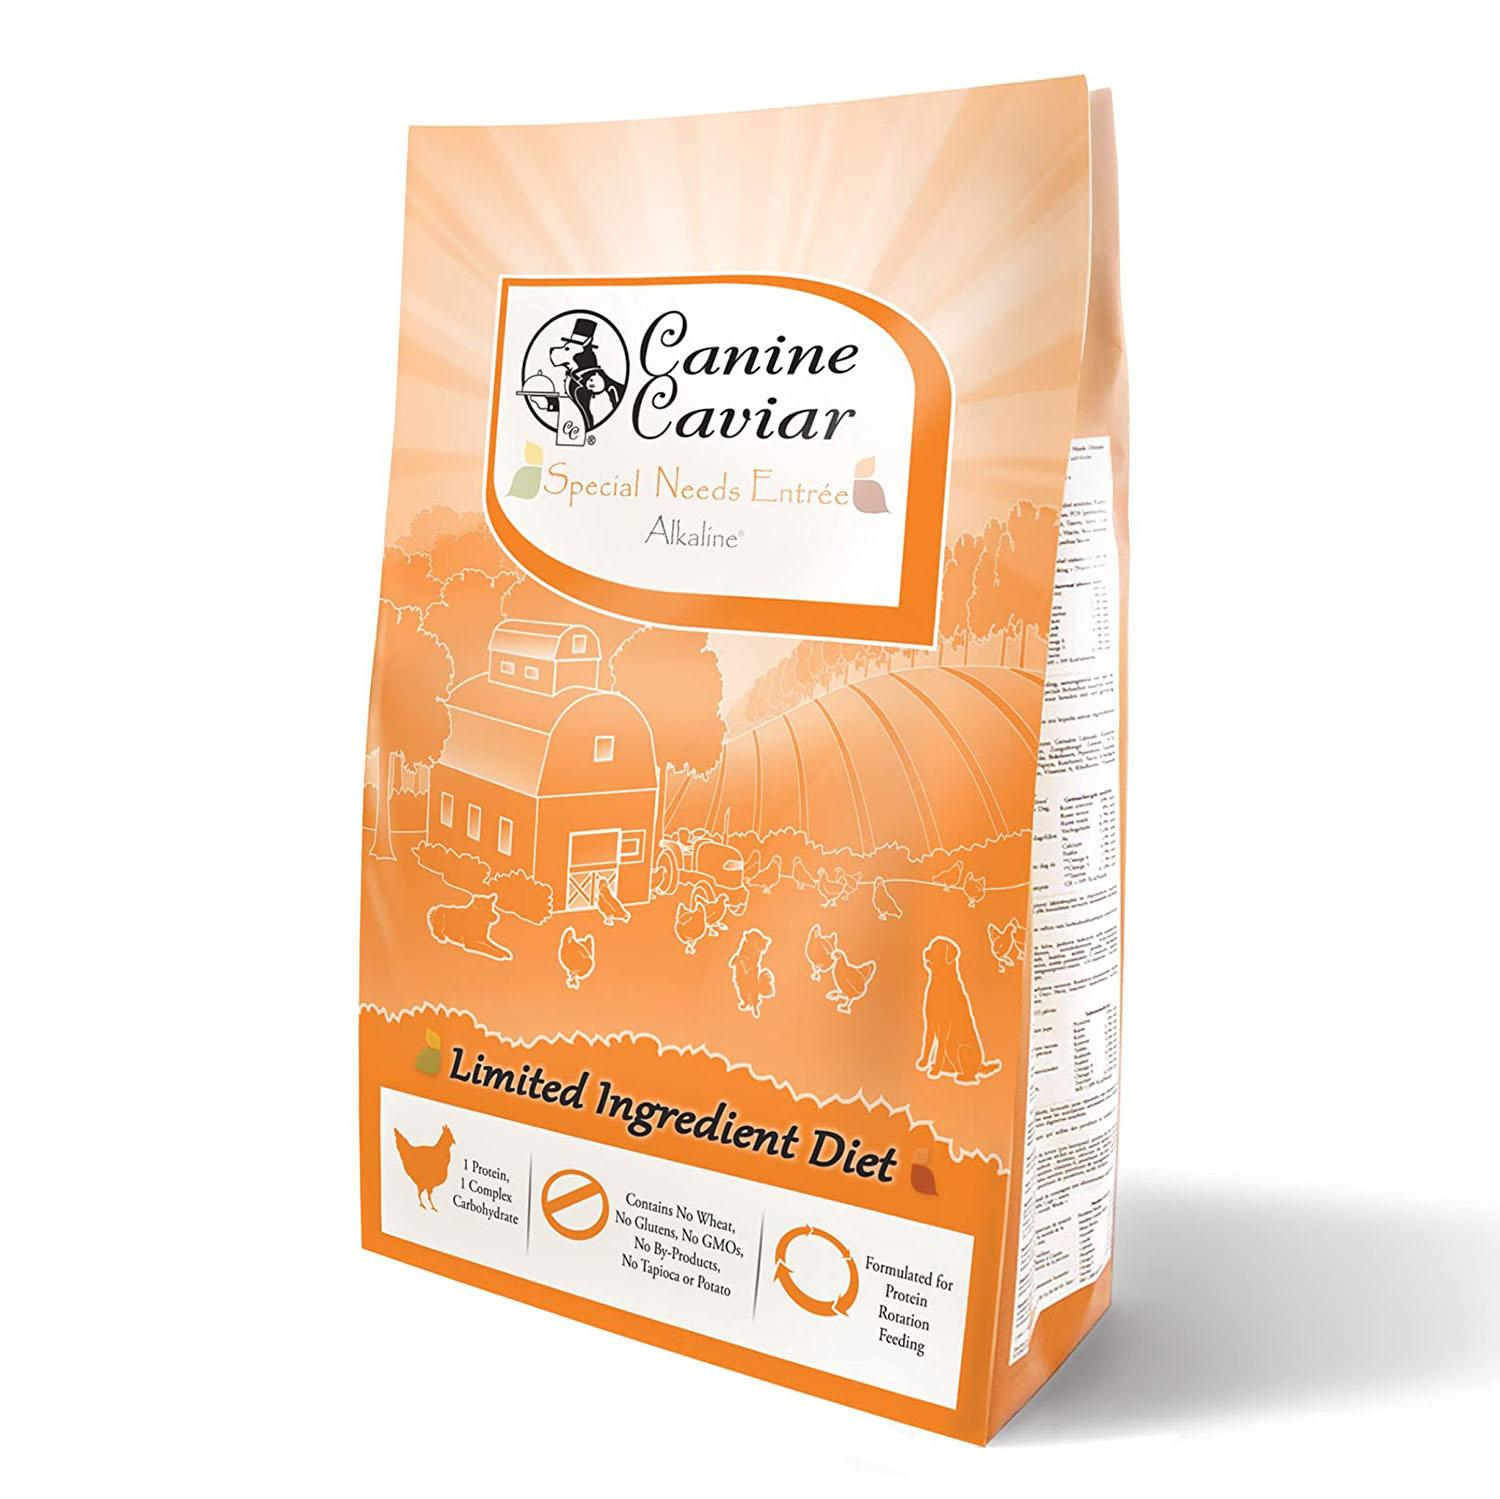 Canine Caviar Limited-Ingredient Alkaline Holistic Dry Dog Food - Special Needs with Chicken & Brown Rice